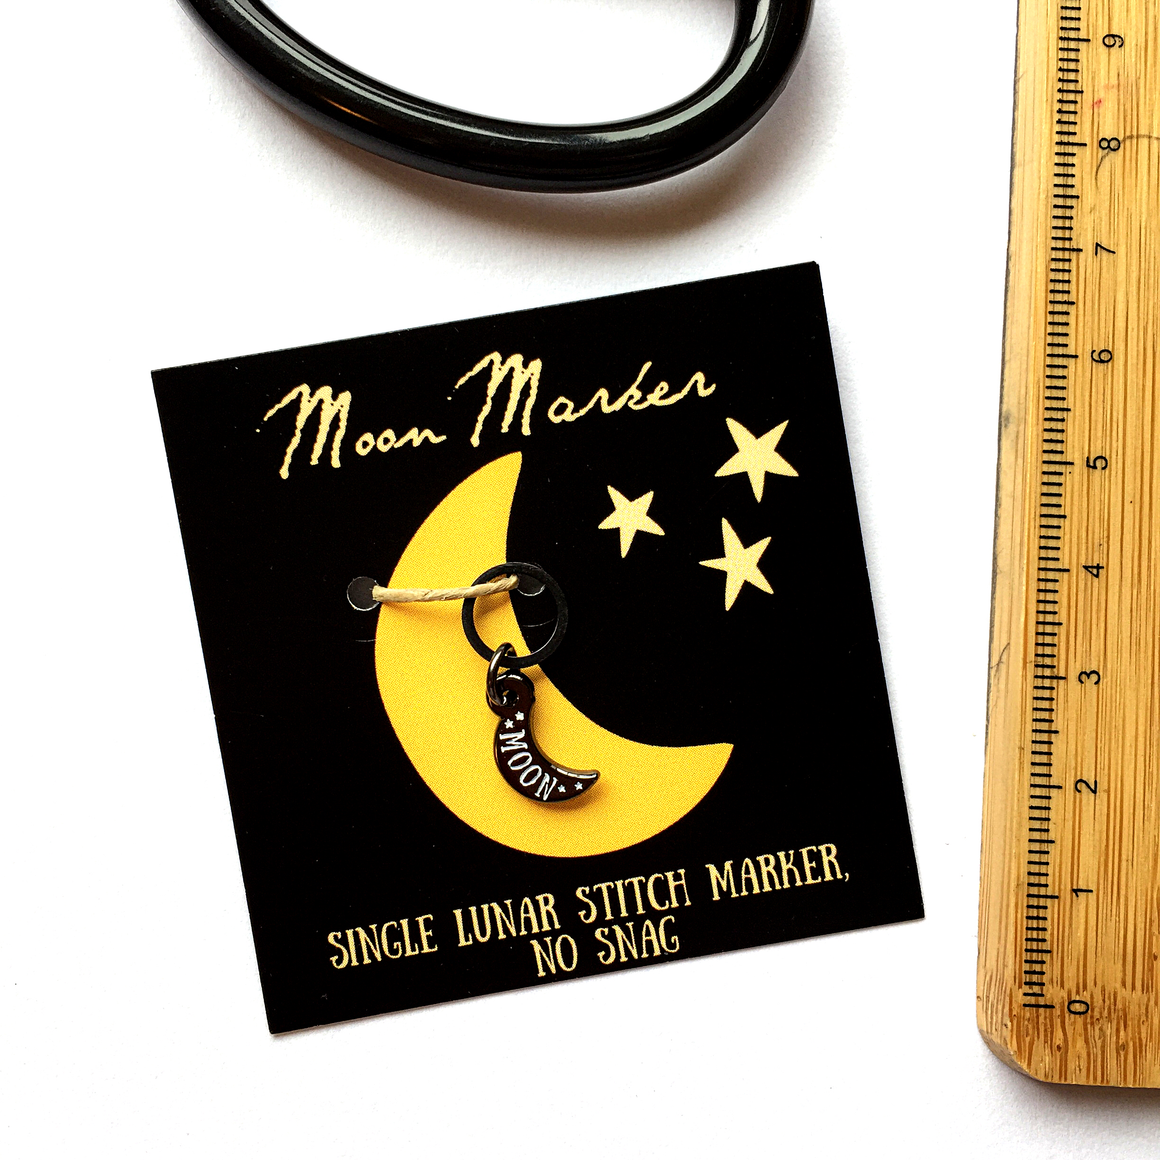 Moon stitch marker- single